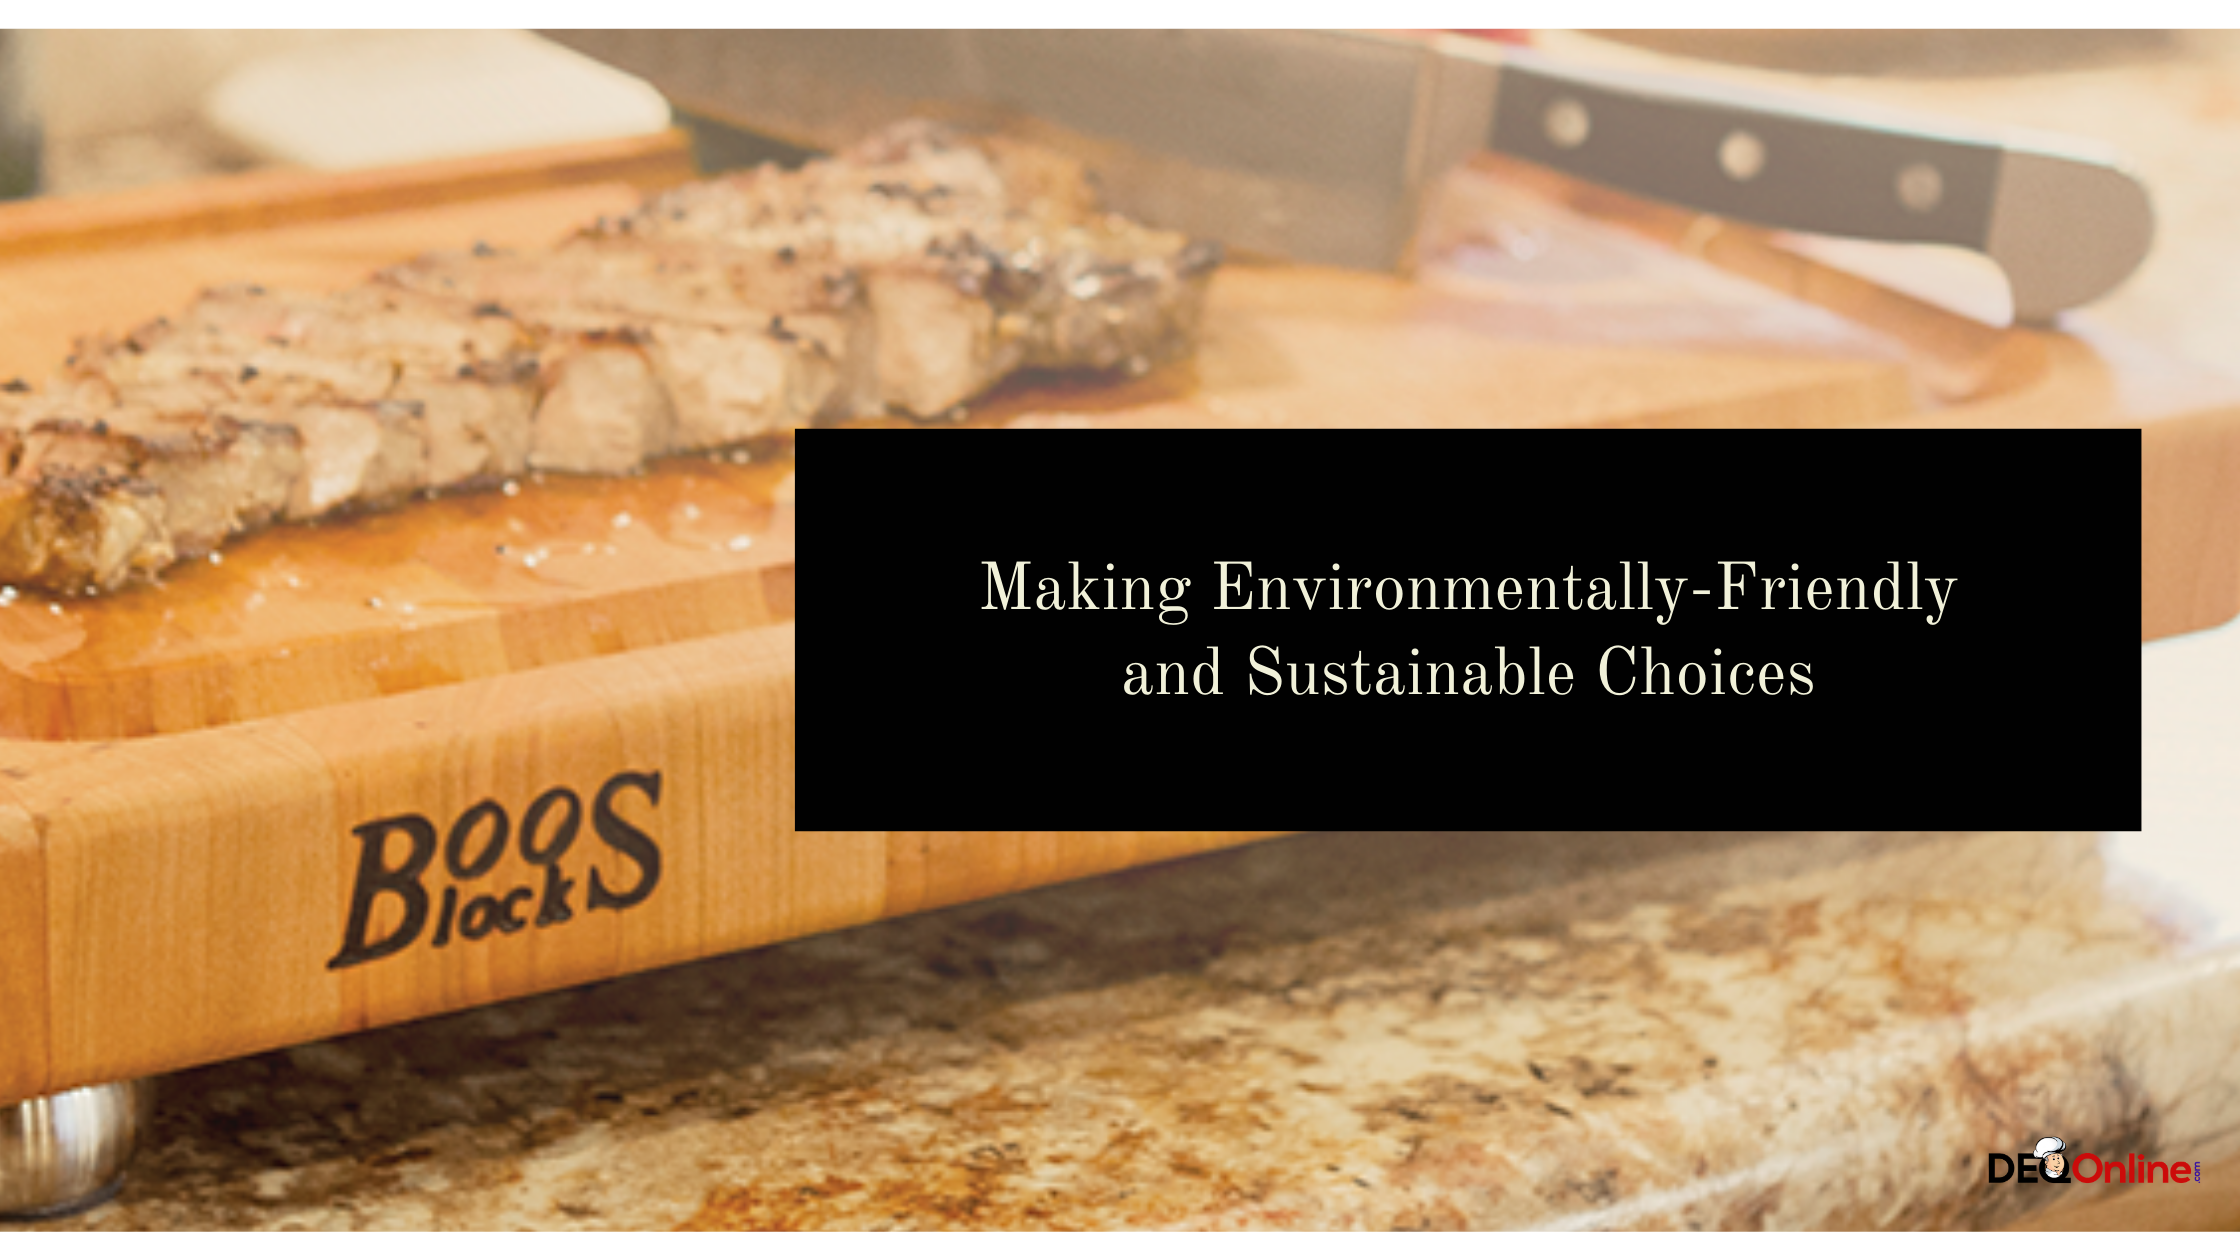 Making Environmentally-Friendly and Sustainable Choices